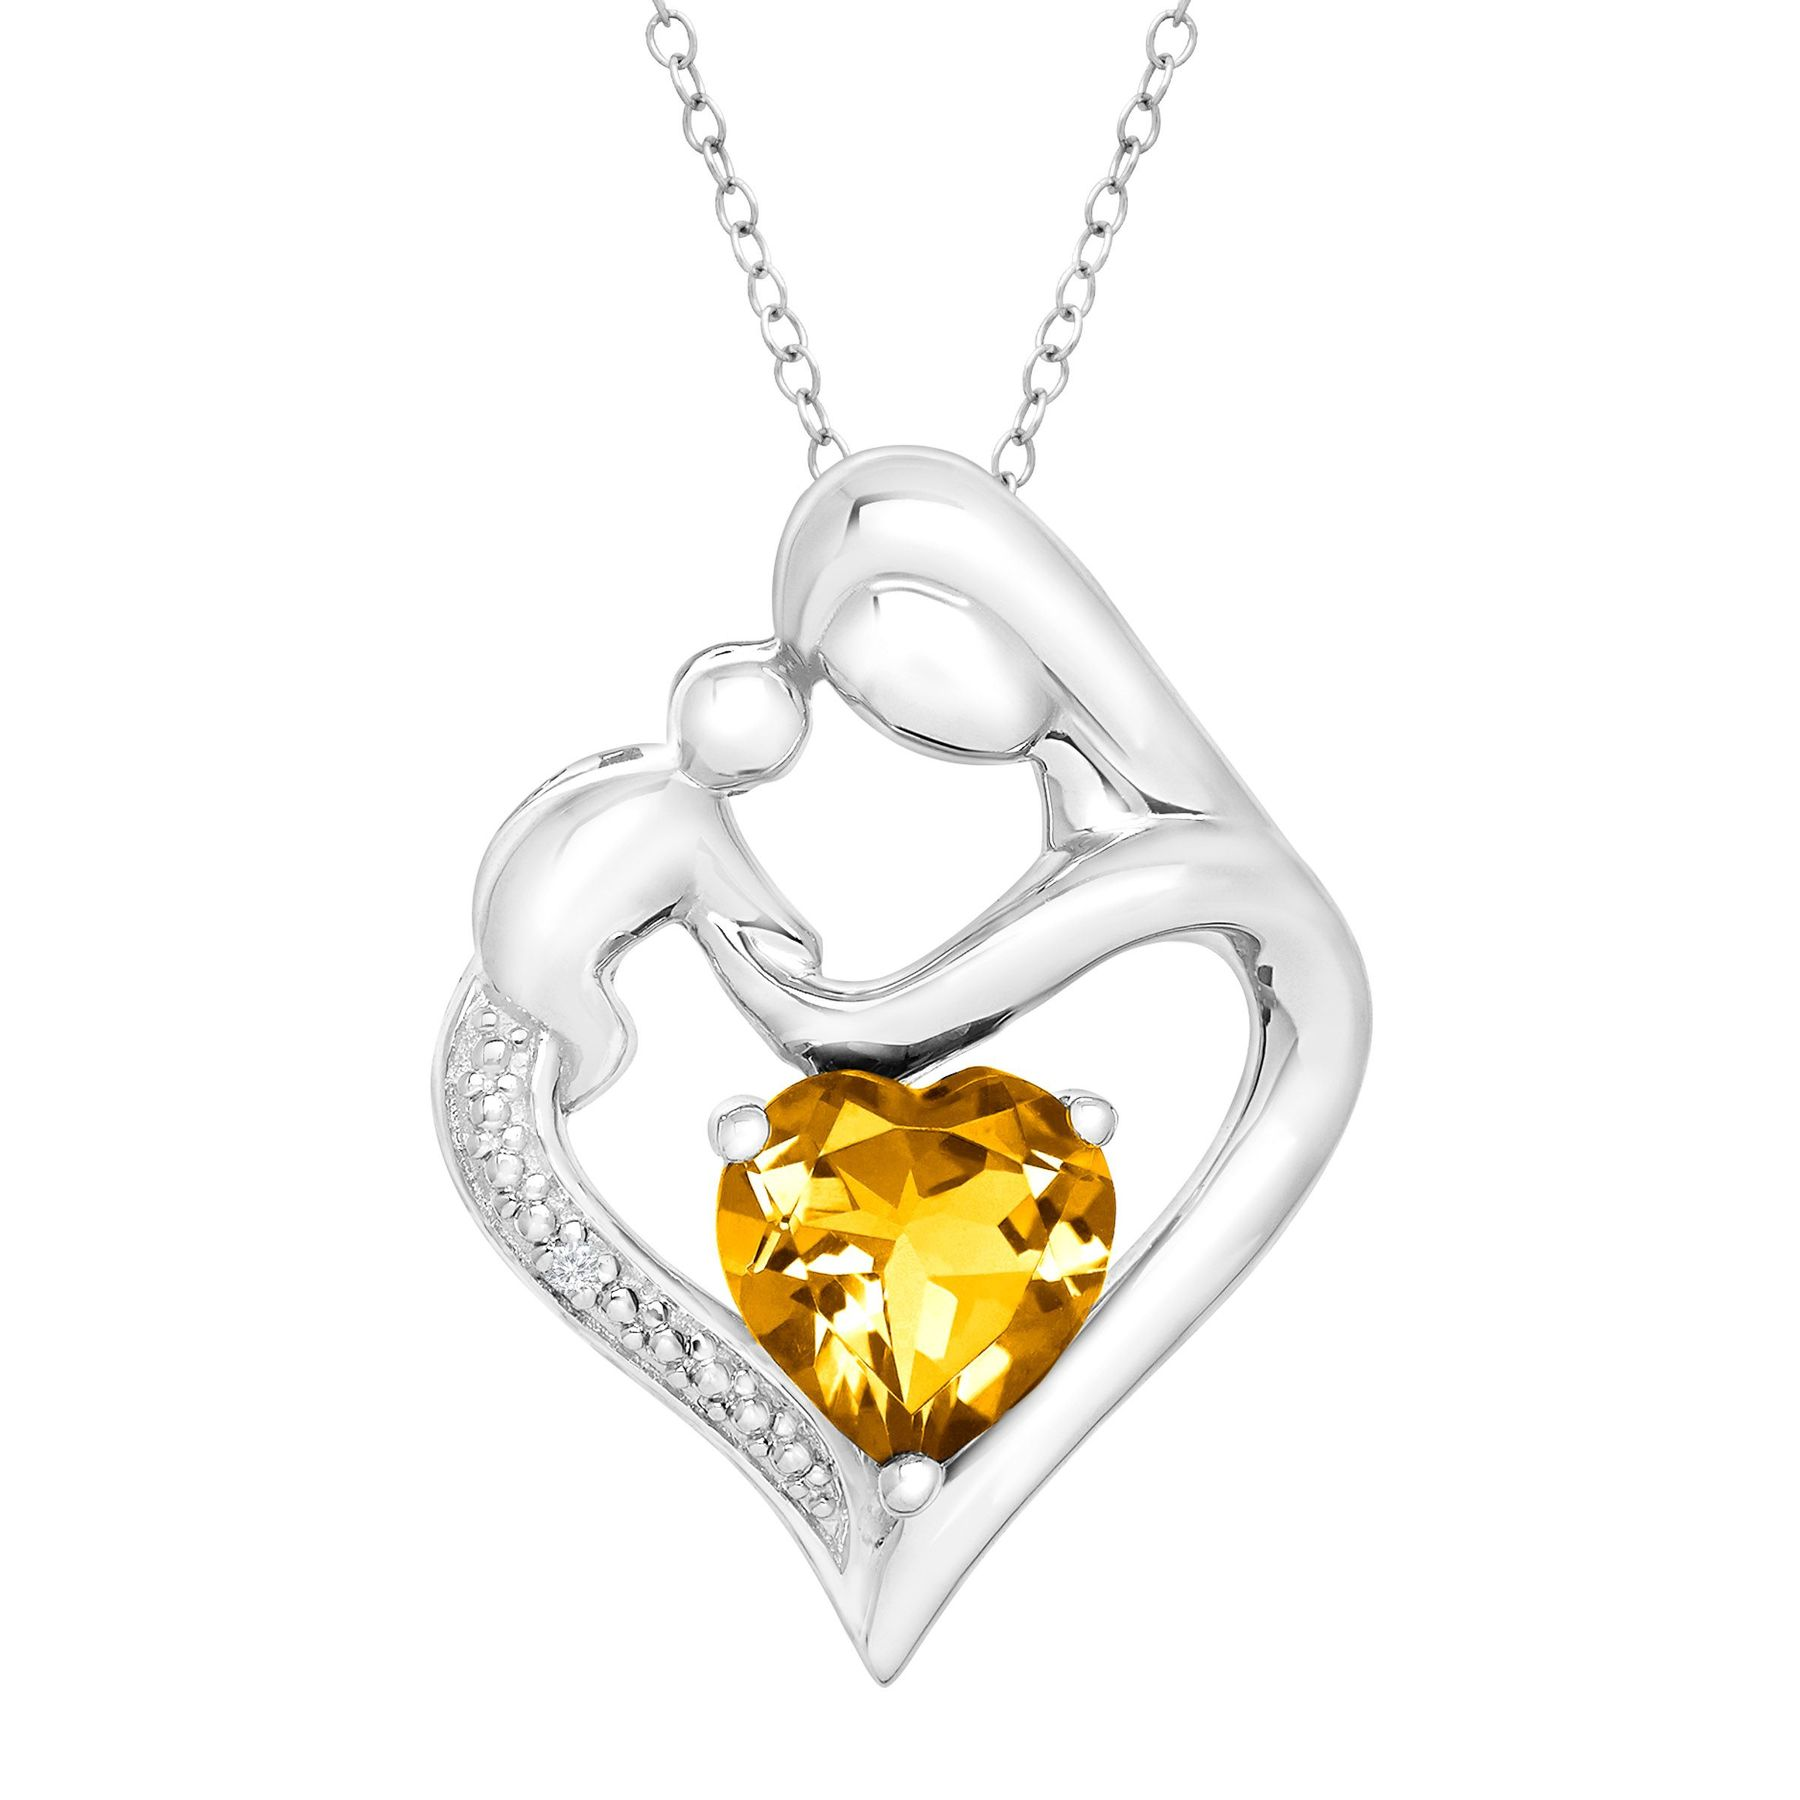 jewelry pendant p sterling silver master heart child mother motherchildheart cremation